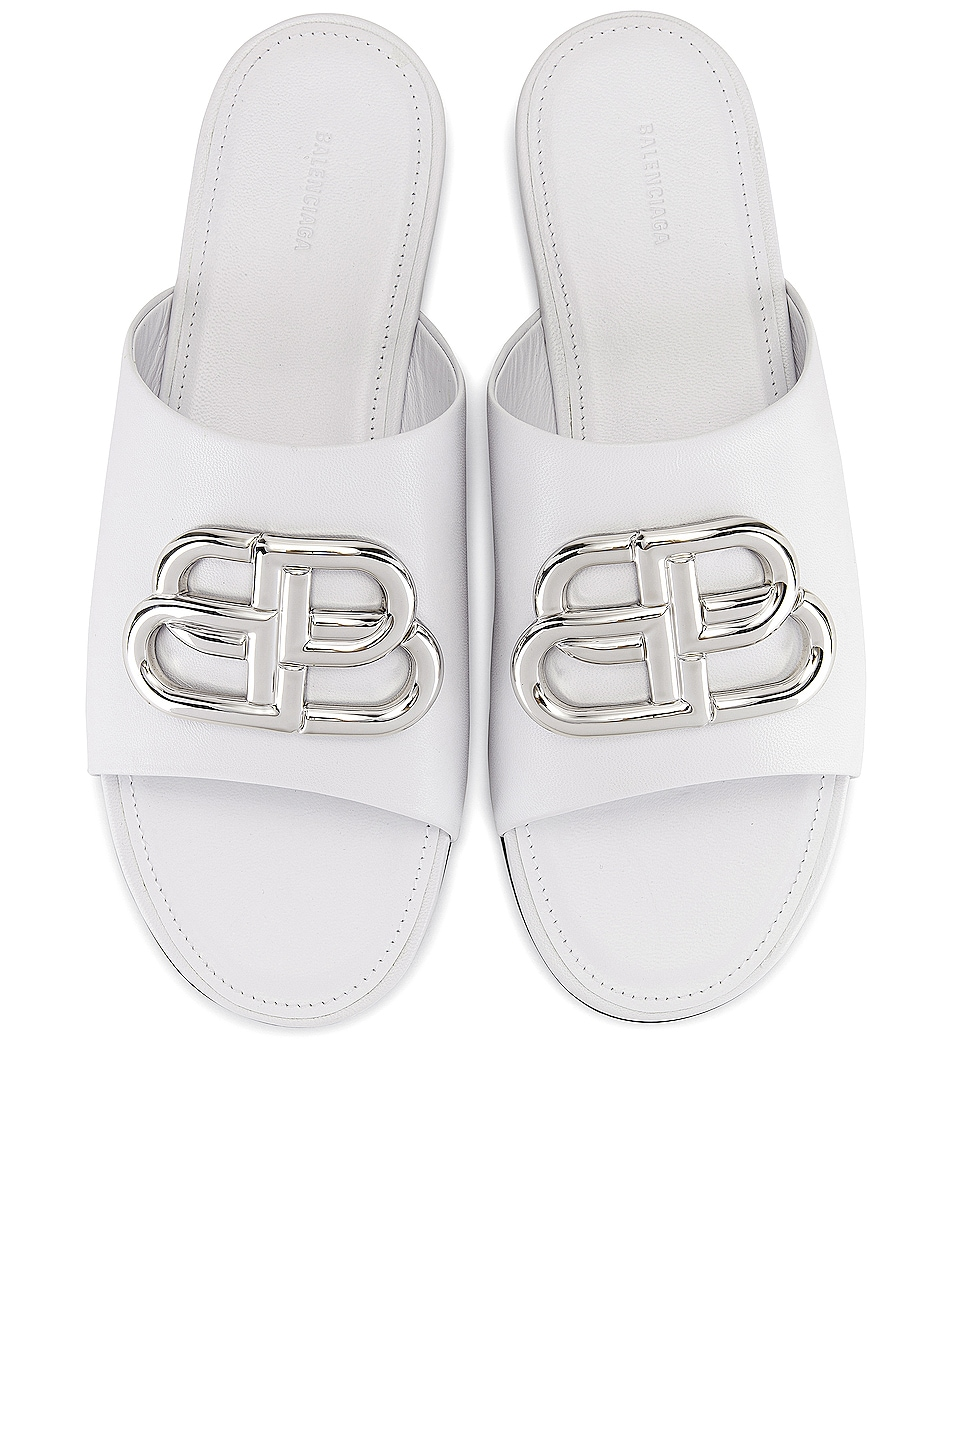 Image 1 of Balenciaga Oval BB Slides in White & Silver